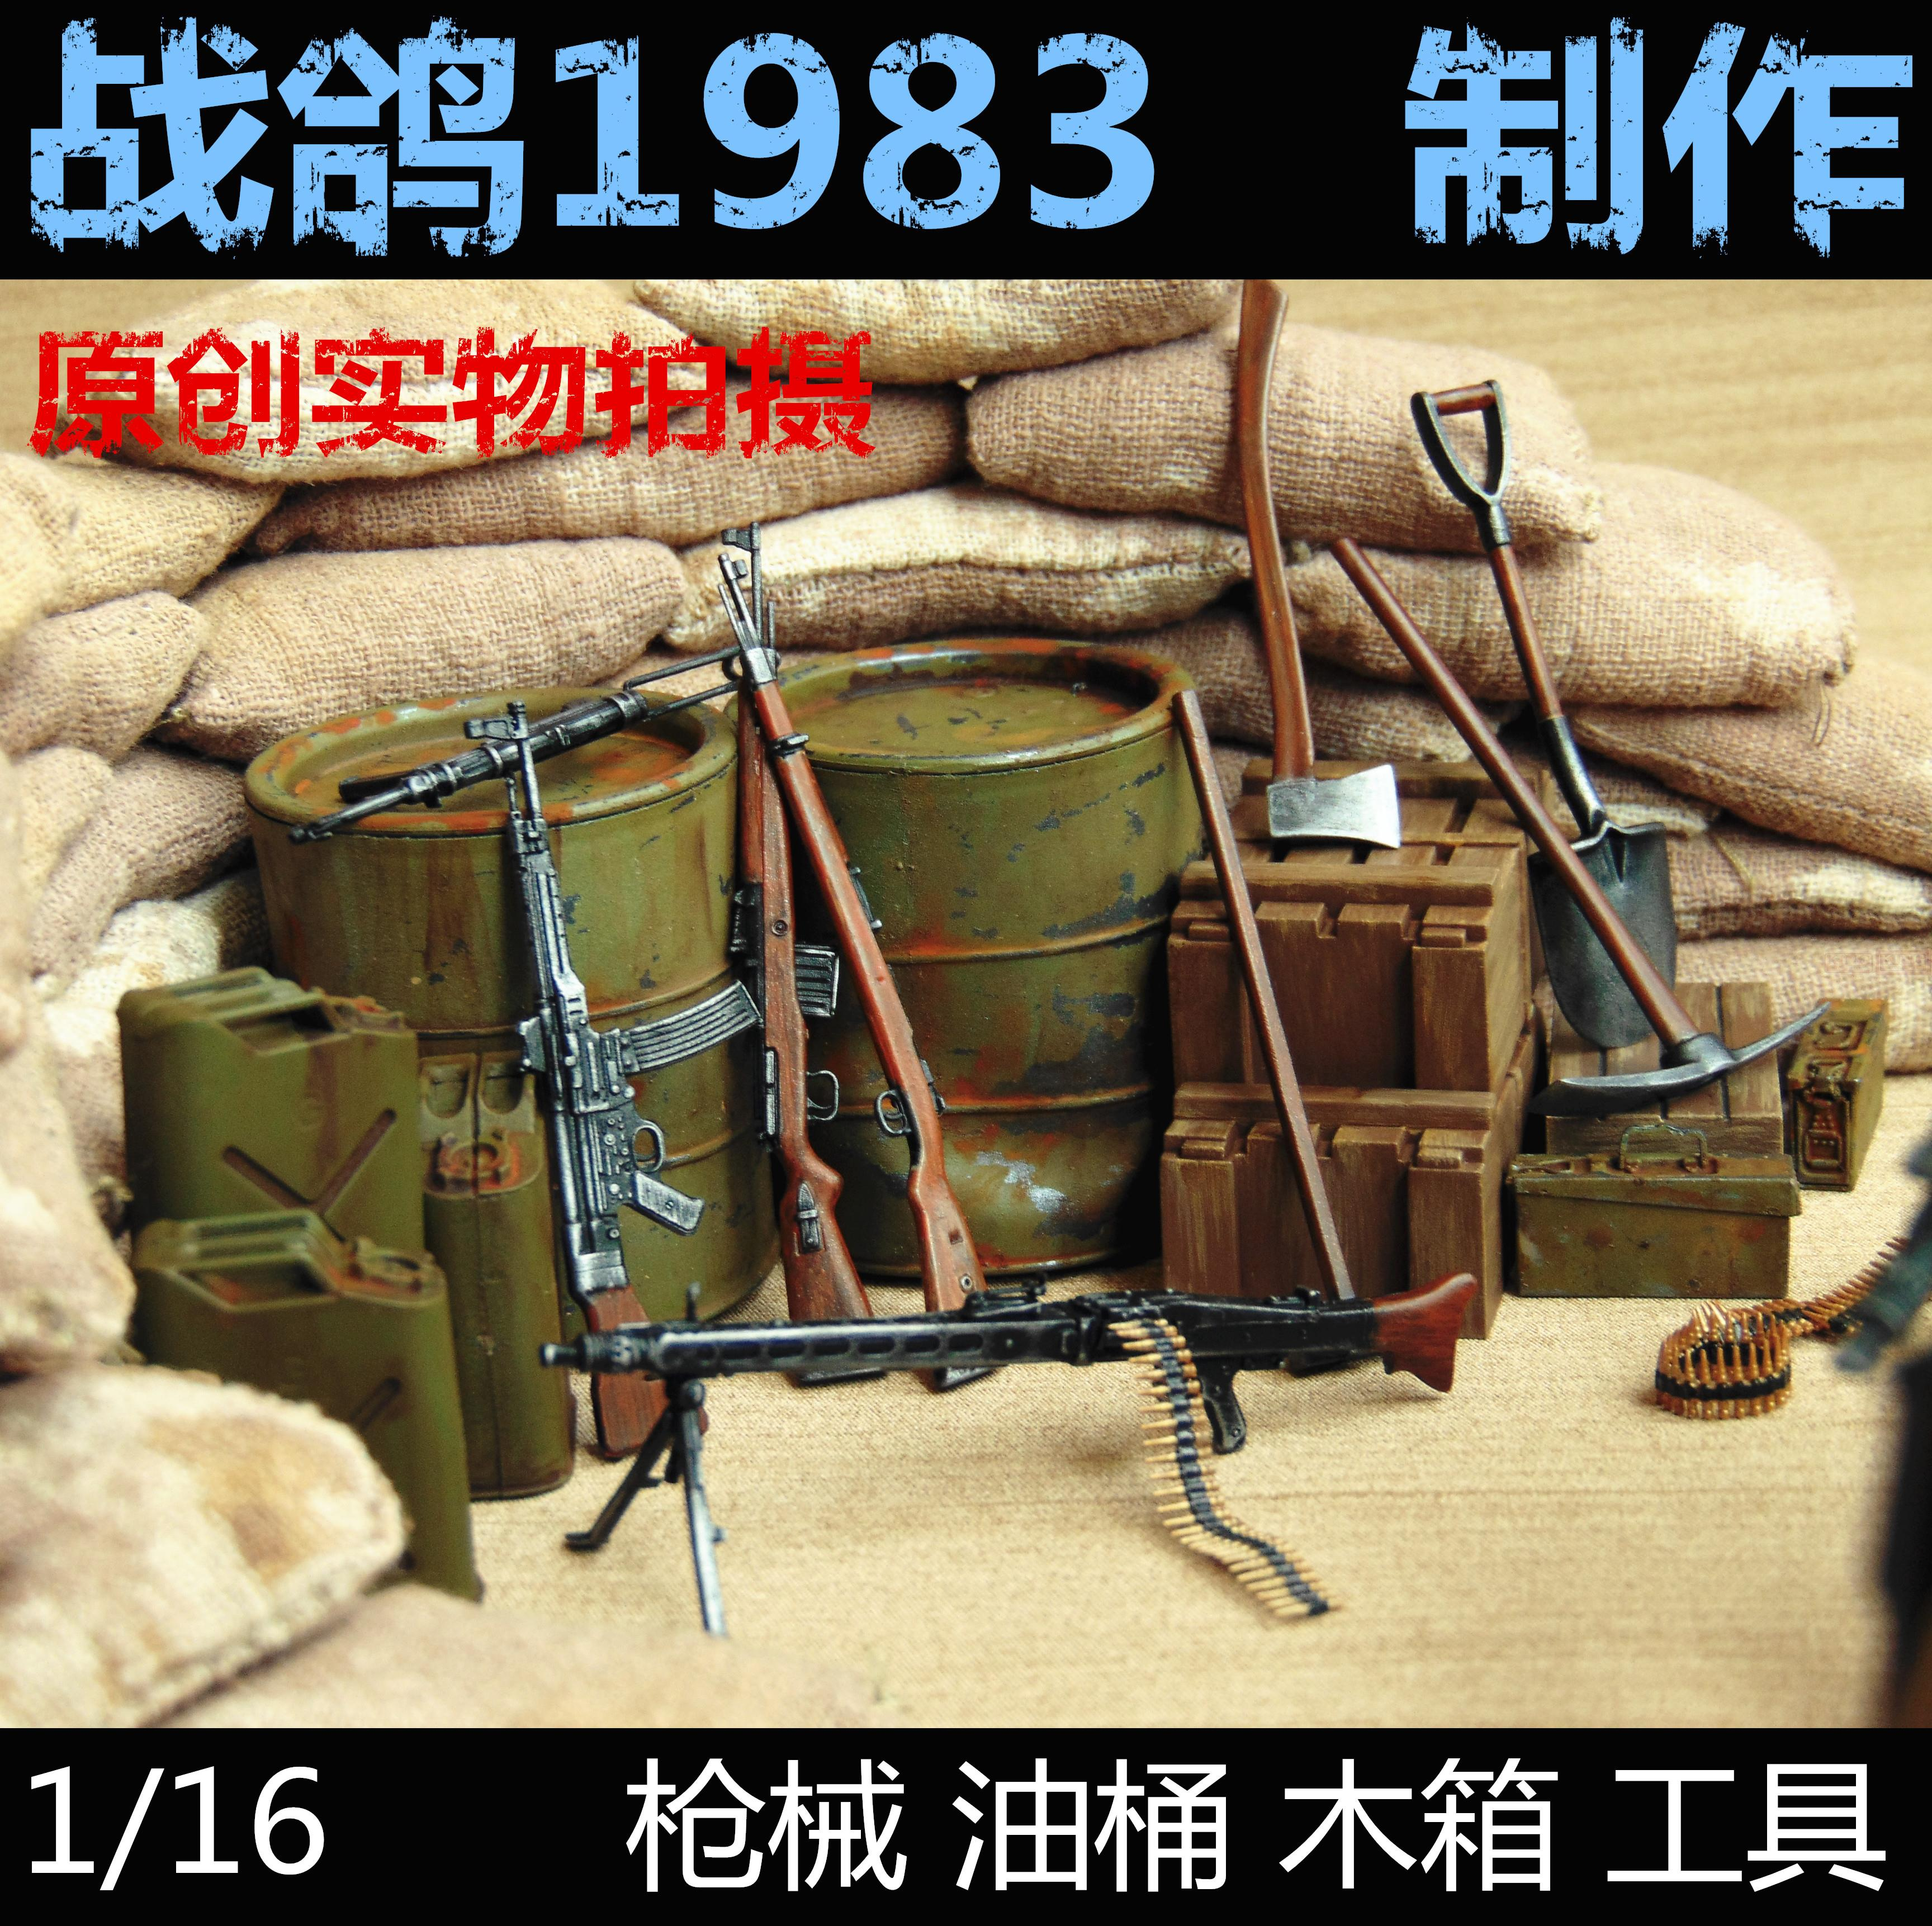 1/16 KNL HOBBY Soldier tank machine gun rifle sandbag bunker scene drums wooden model scenario Accessories knl hobby voyager model pea306 soviet union gaz aaa three axis truck with cross country track metal etching pieces